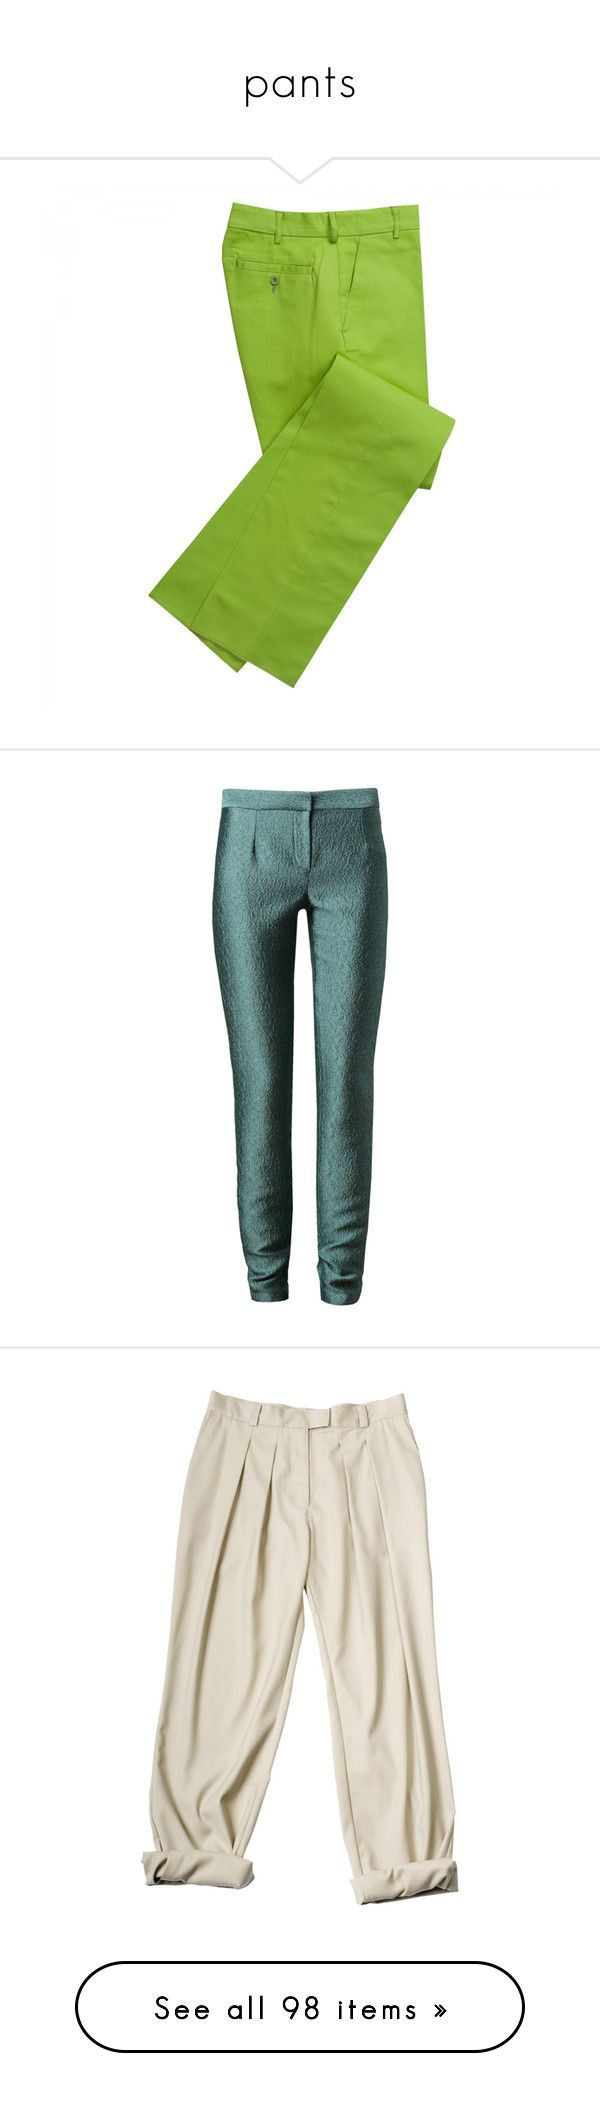 """""""pants"""" by kristina-bishkup ❤ liked on Polyvore featuring pants, lime green, chino pants, bright pants, green pants, green trousers, corduroy trousers, trousers, chalayan and zipper trousers"""